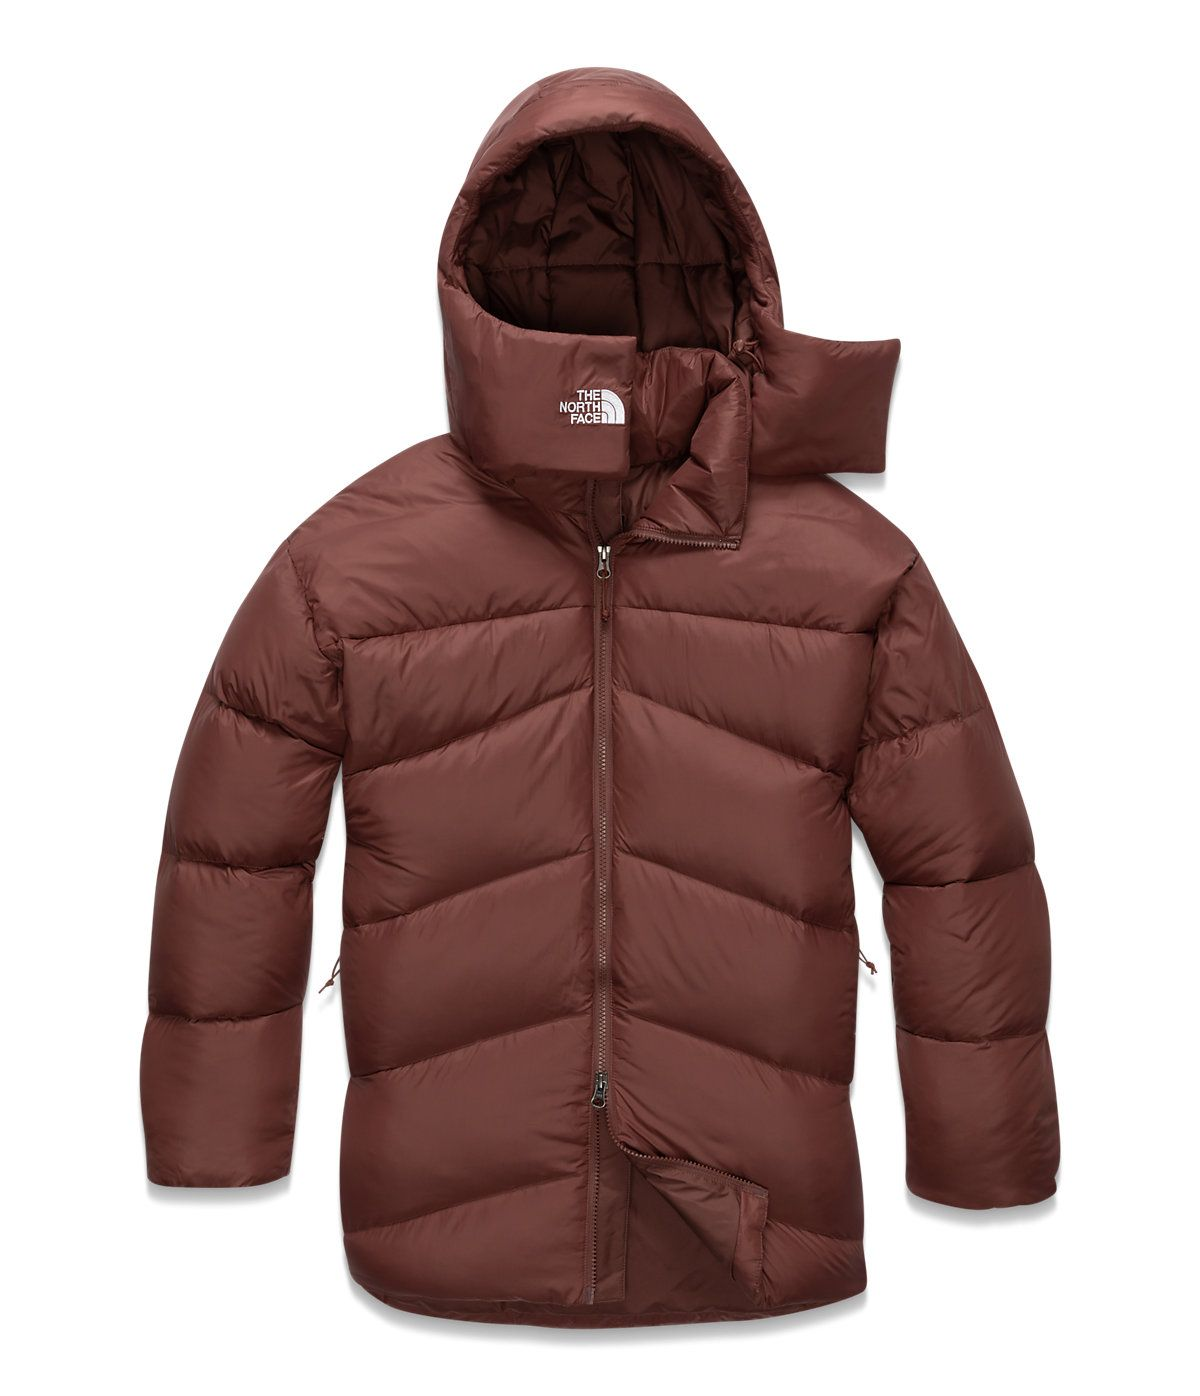 The North Face Women S Palomar Down Parka Down Parka Parka The North Face [ 1396 x 1200 Pixel ]